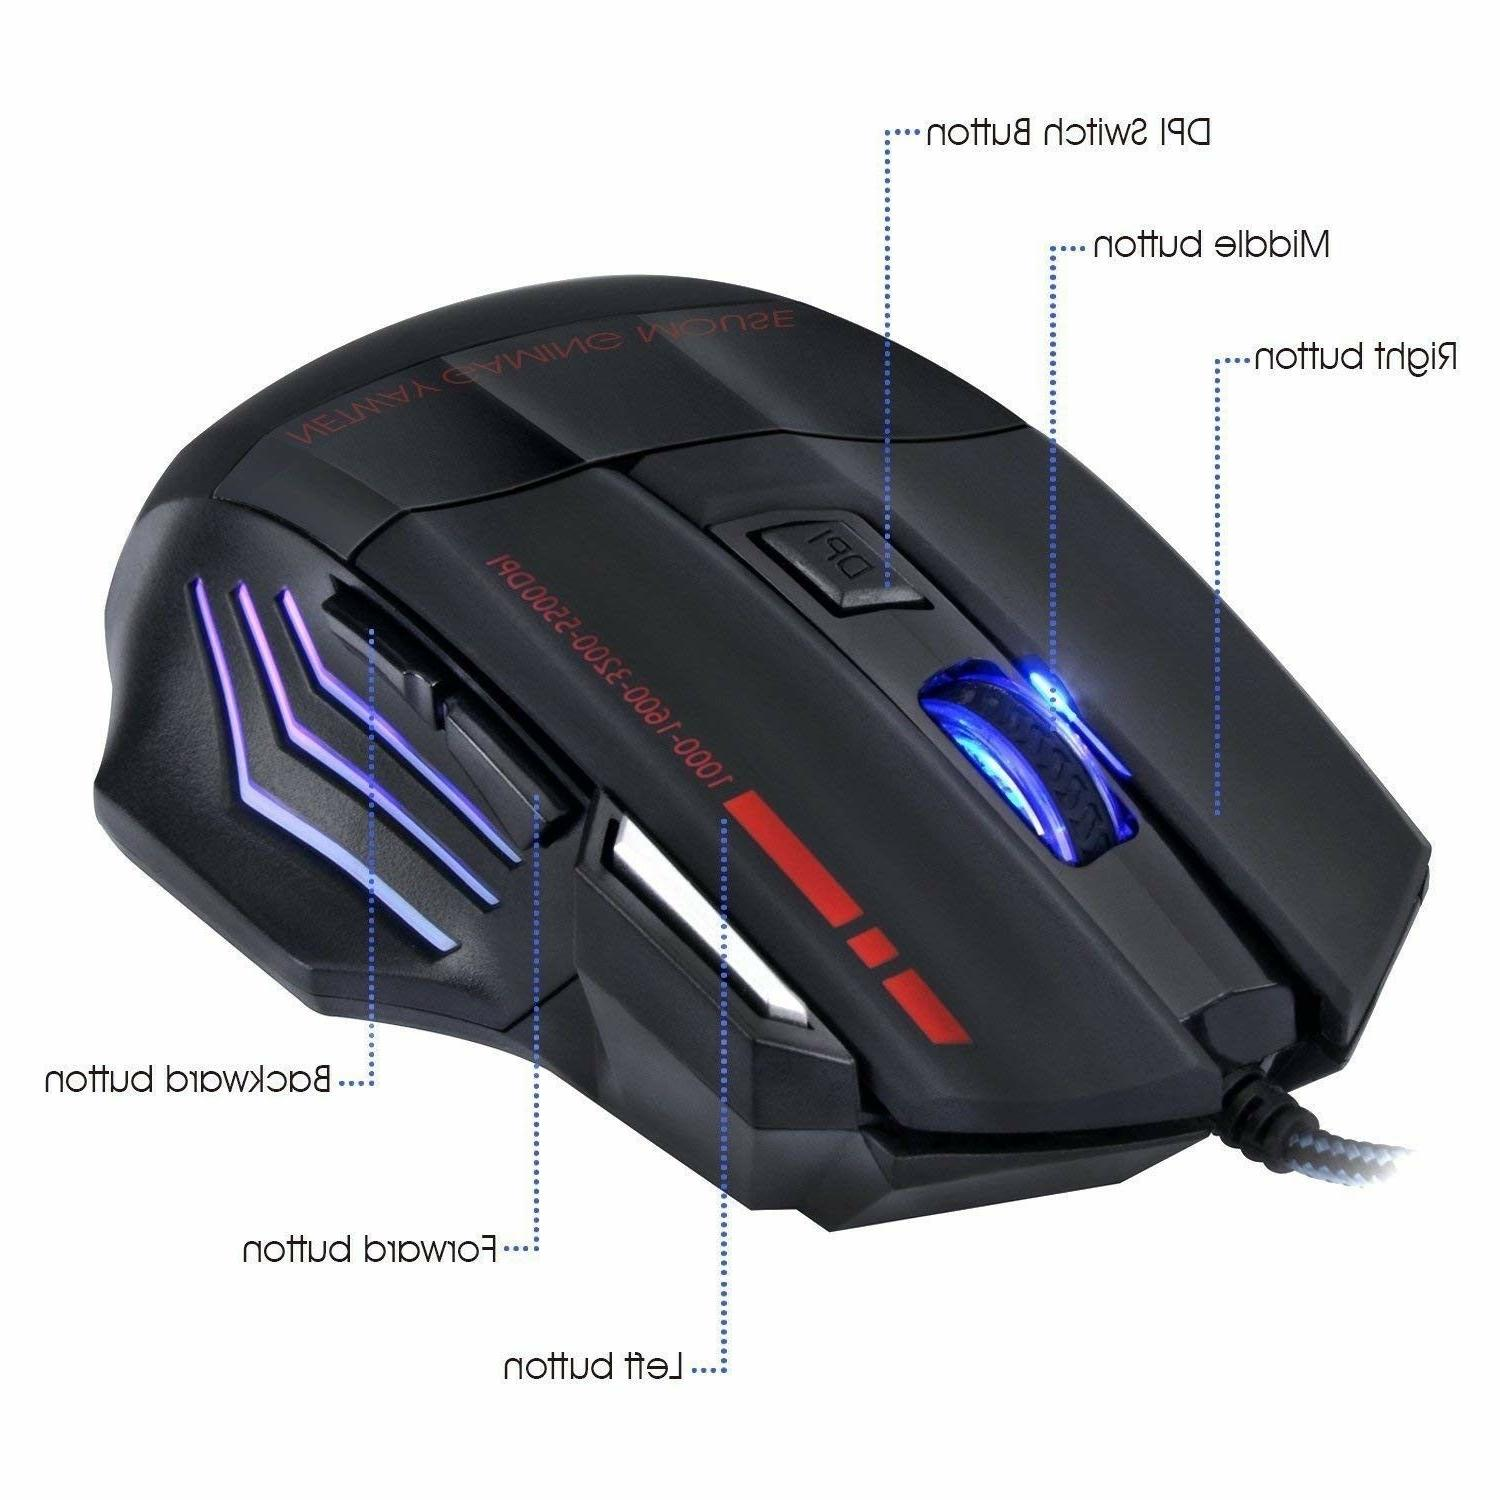 Keyboard Mouse Set for PS4 PS3 Xbox One and Gaming Rainbow LED Combo